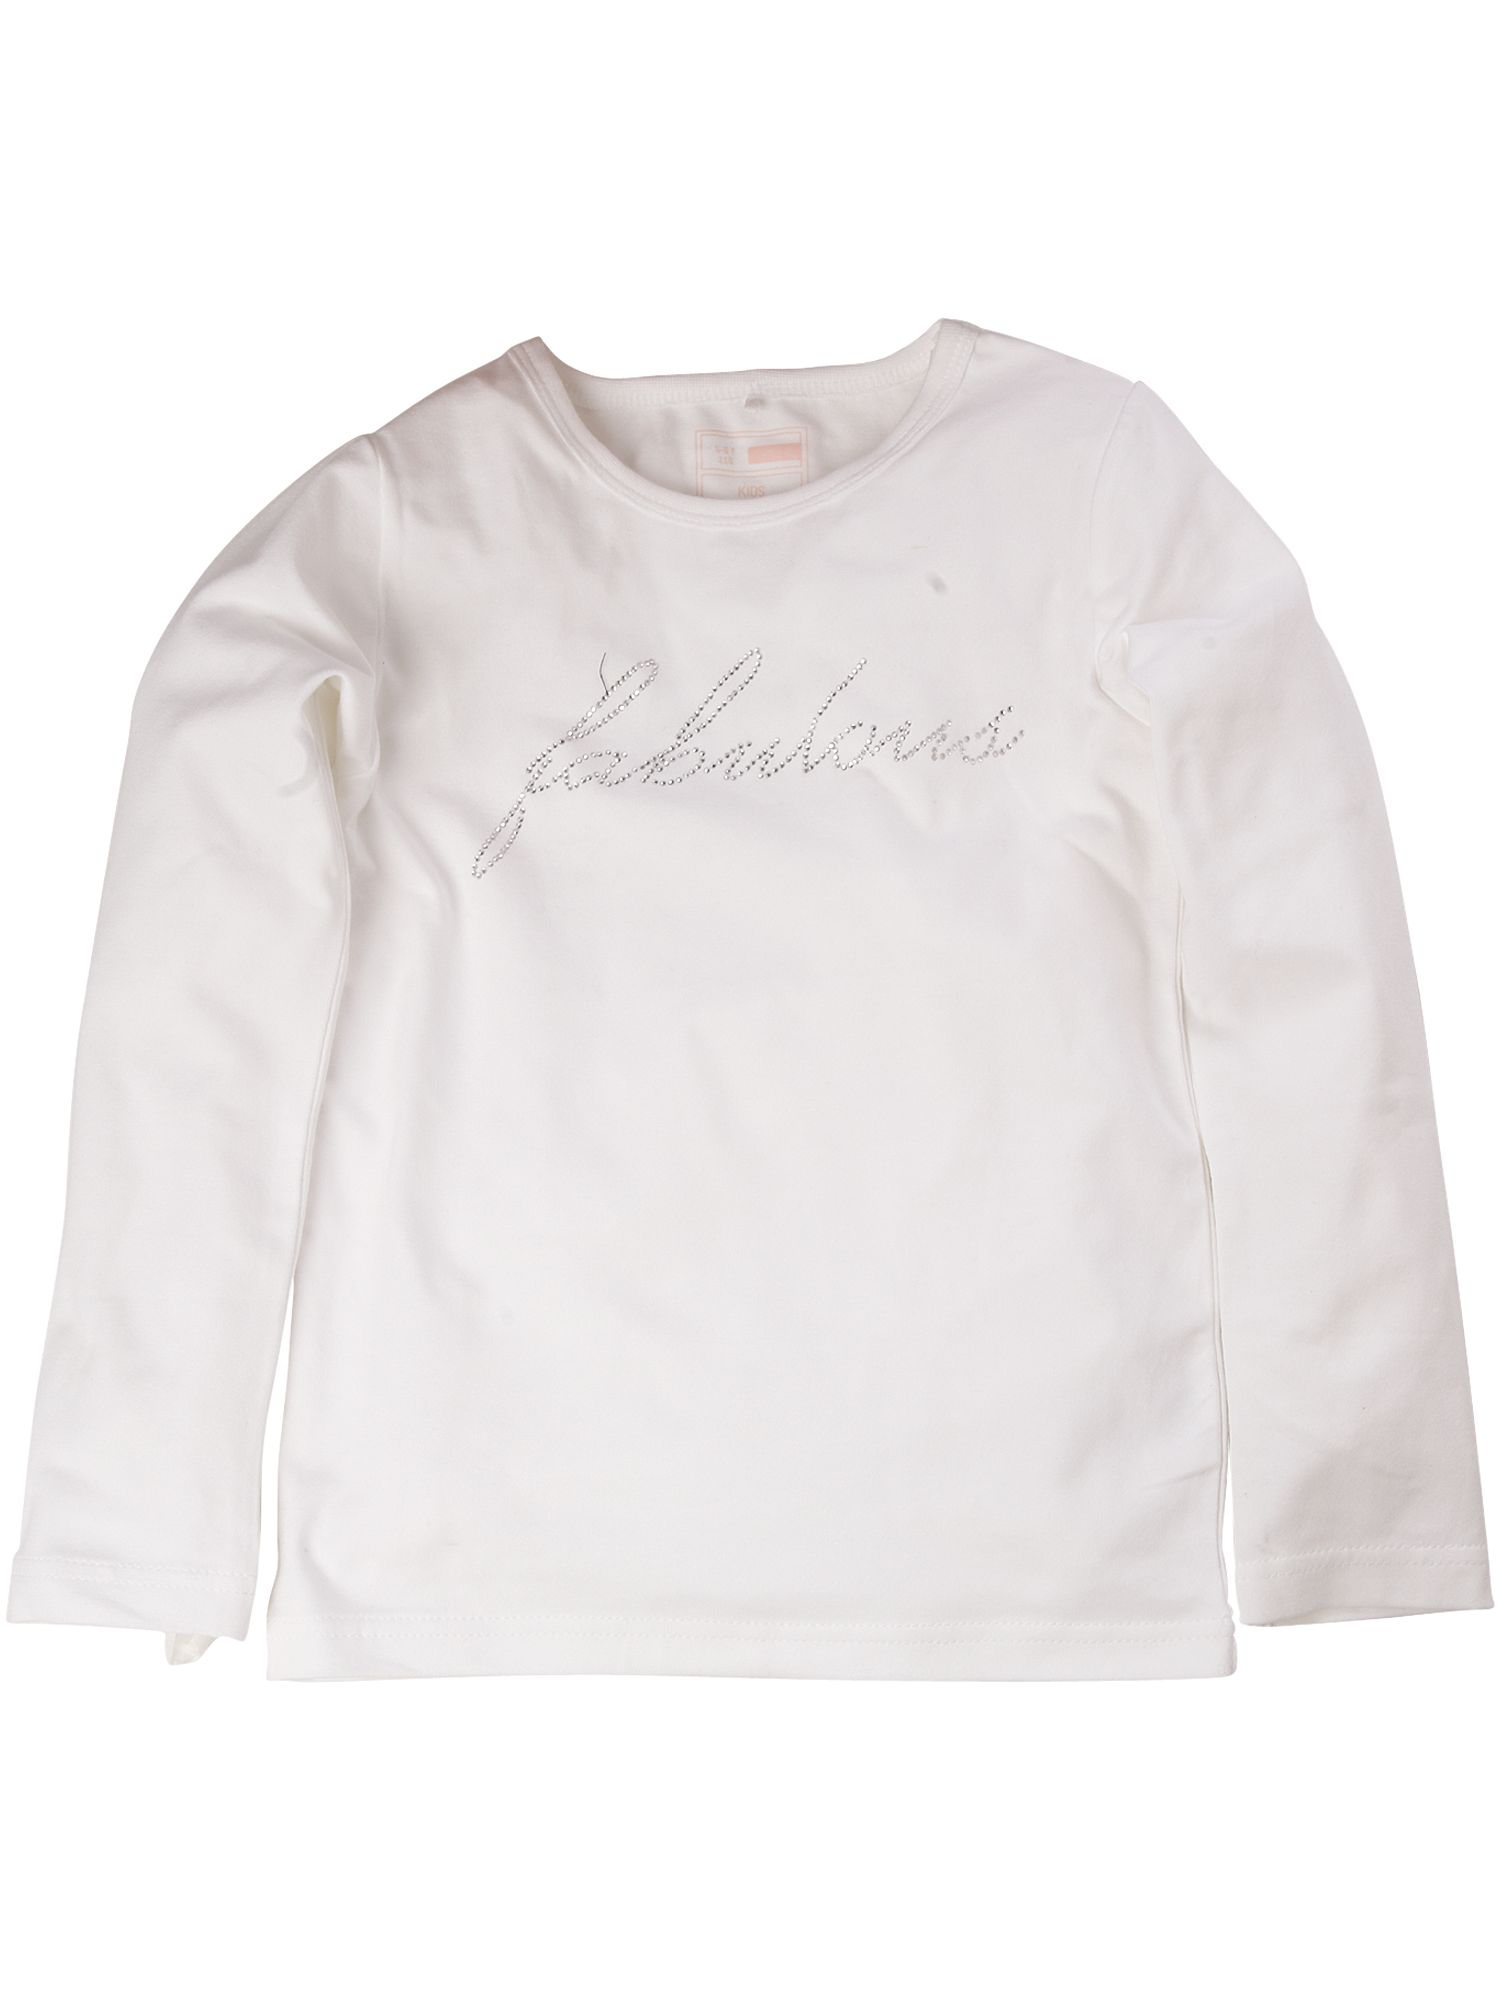 Name It Long-sleeved fabulous T-shirt White product image